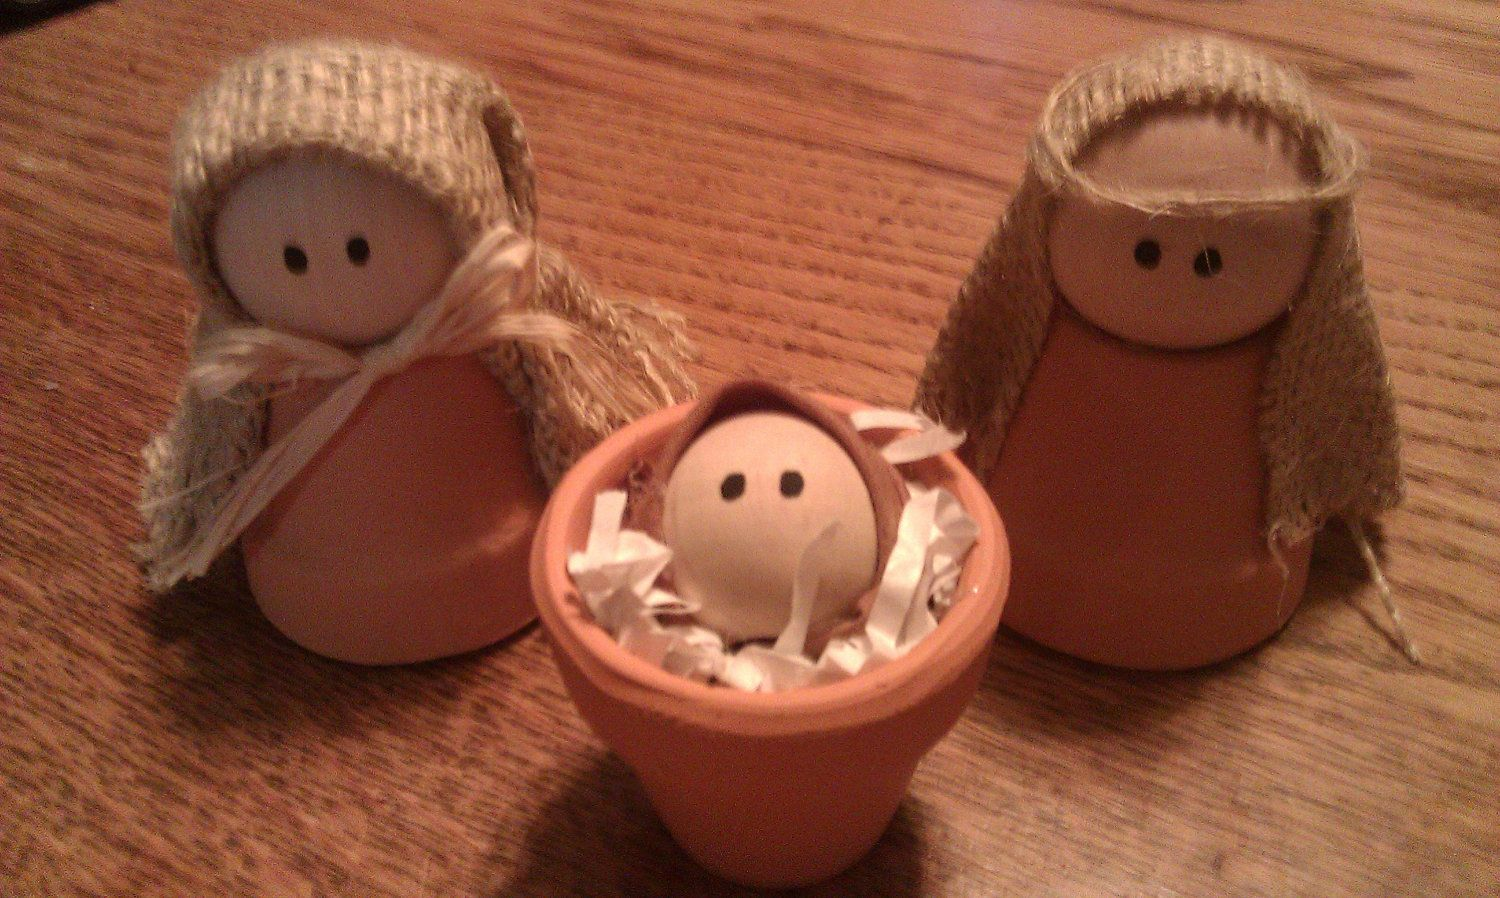 """•❈• Nativity Craft ...  Handmade nativity includes baby Jesus, Mary and Joseph.  Clay pots are left natural. Burlap is used for headdress.  Made from 1 1/2"""" clay pots 1 1/2 """" wooden balls are used for the heads of Mary and Joseph. 1"""" wooden balls form baby Jesus. Height is approximately 3""""."""